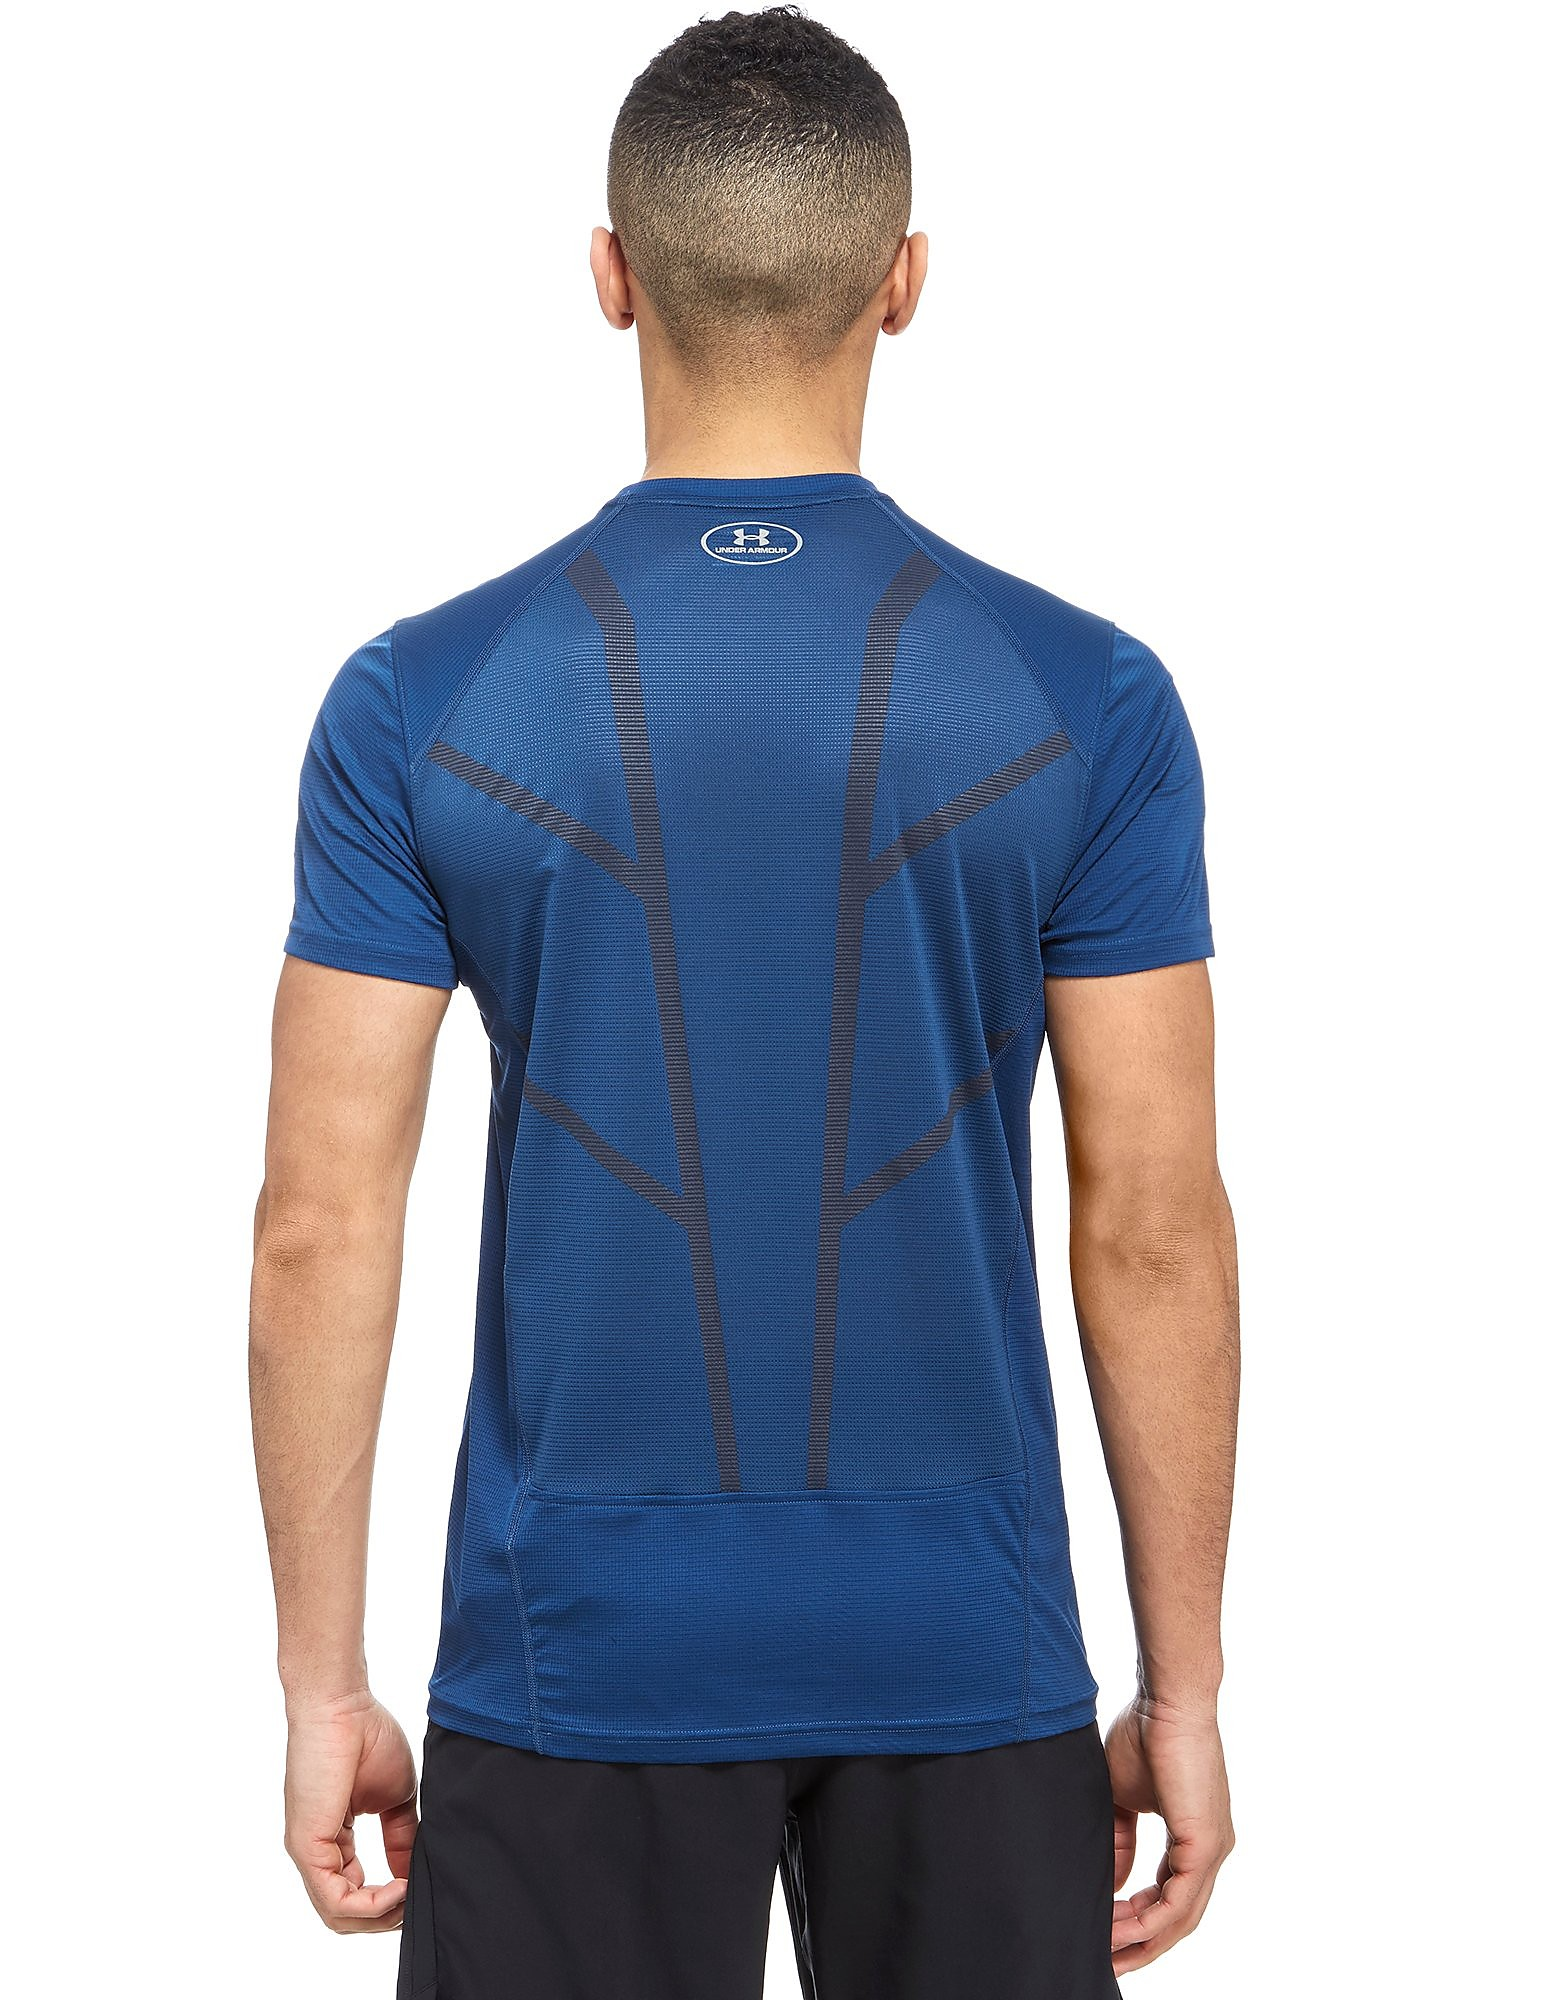 Under Armour CoolSwitch Run T-Shirt